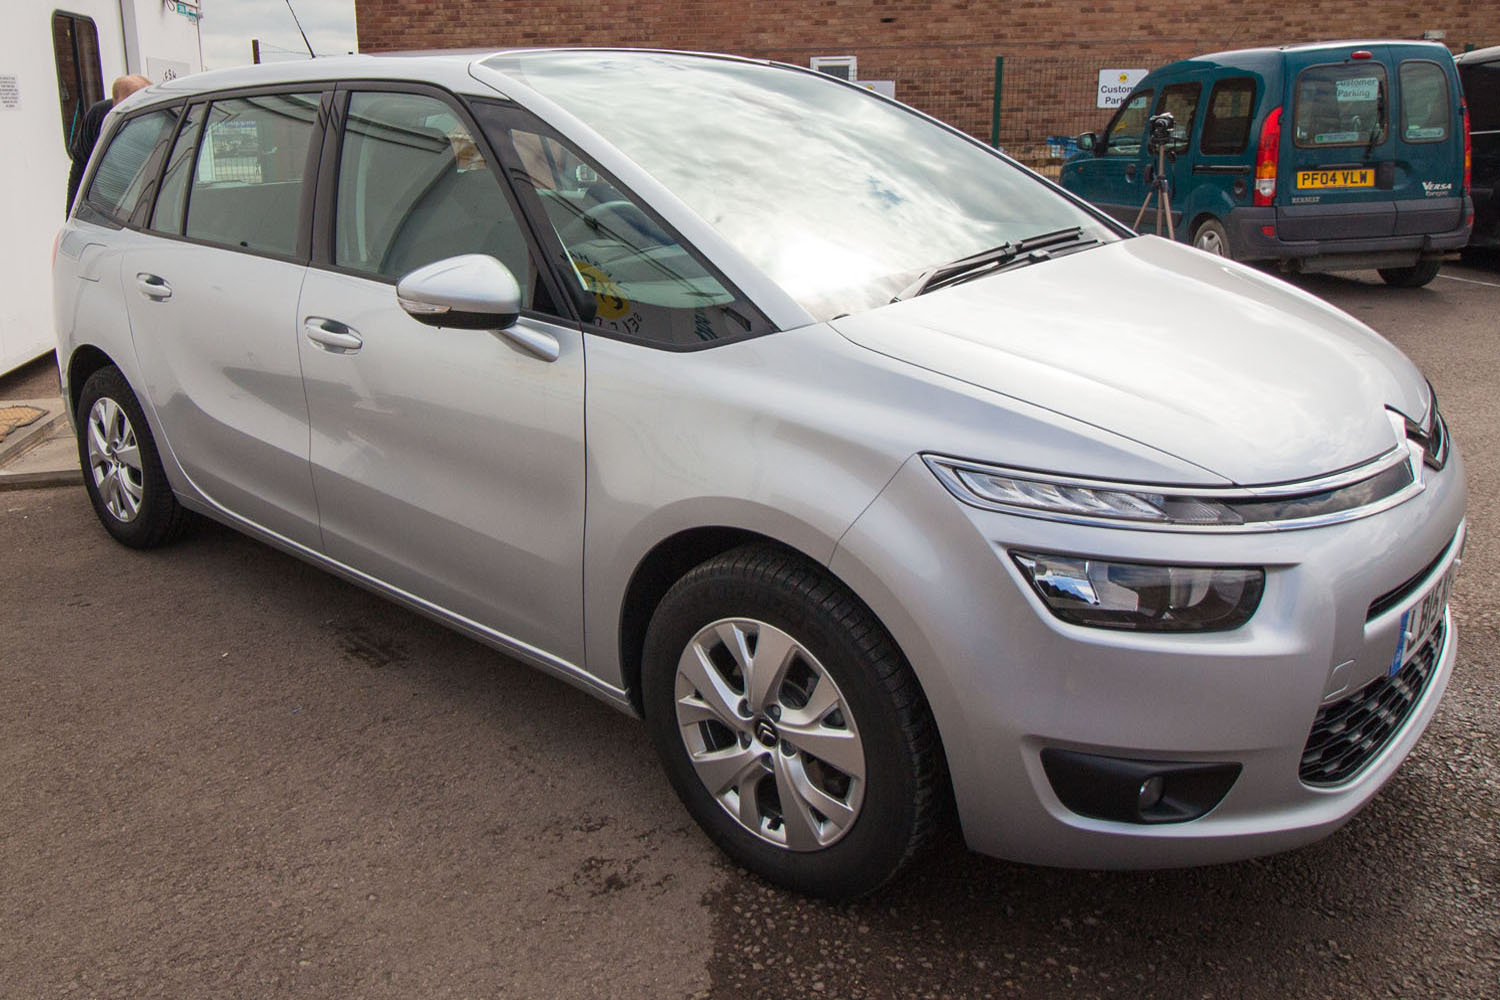 7 Seater Vehicles >> 7 Seater MPV - Redditch Self Drive